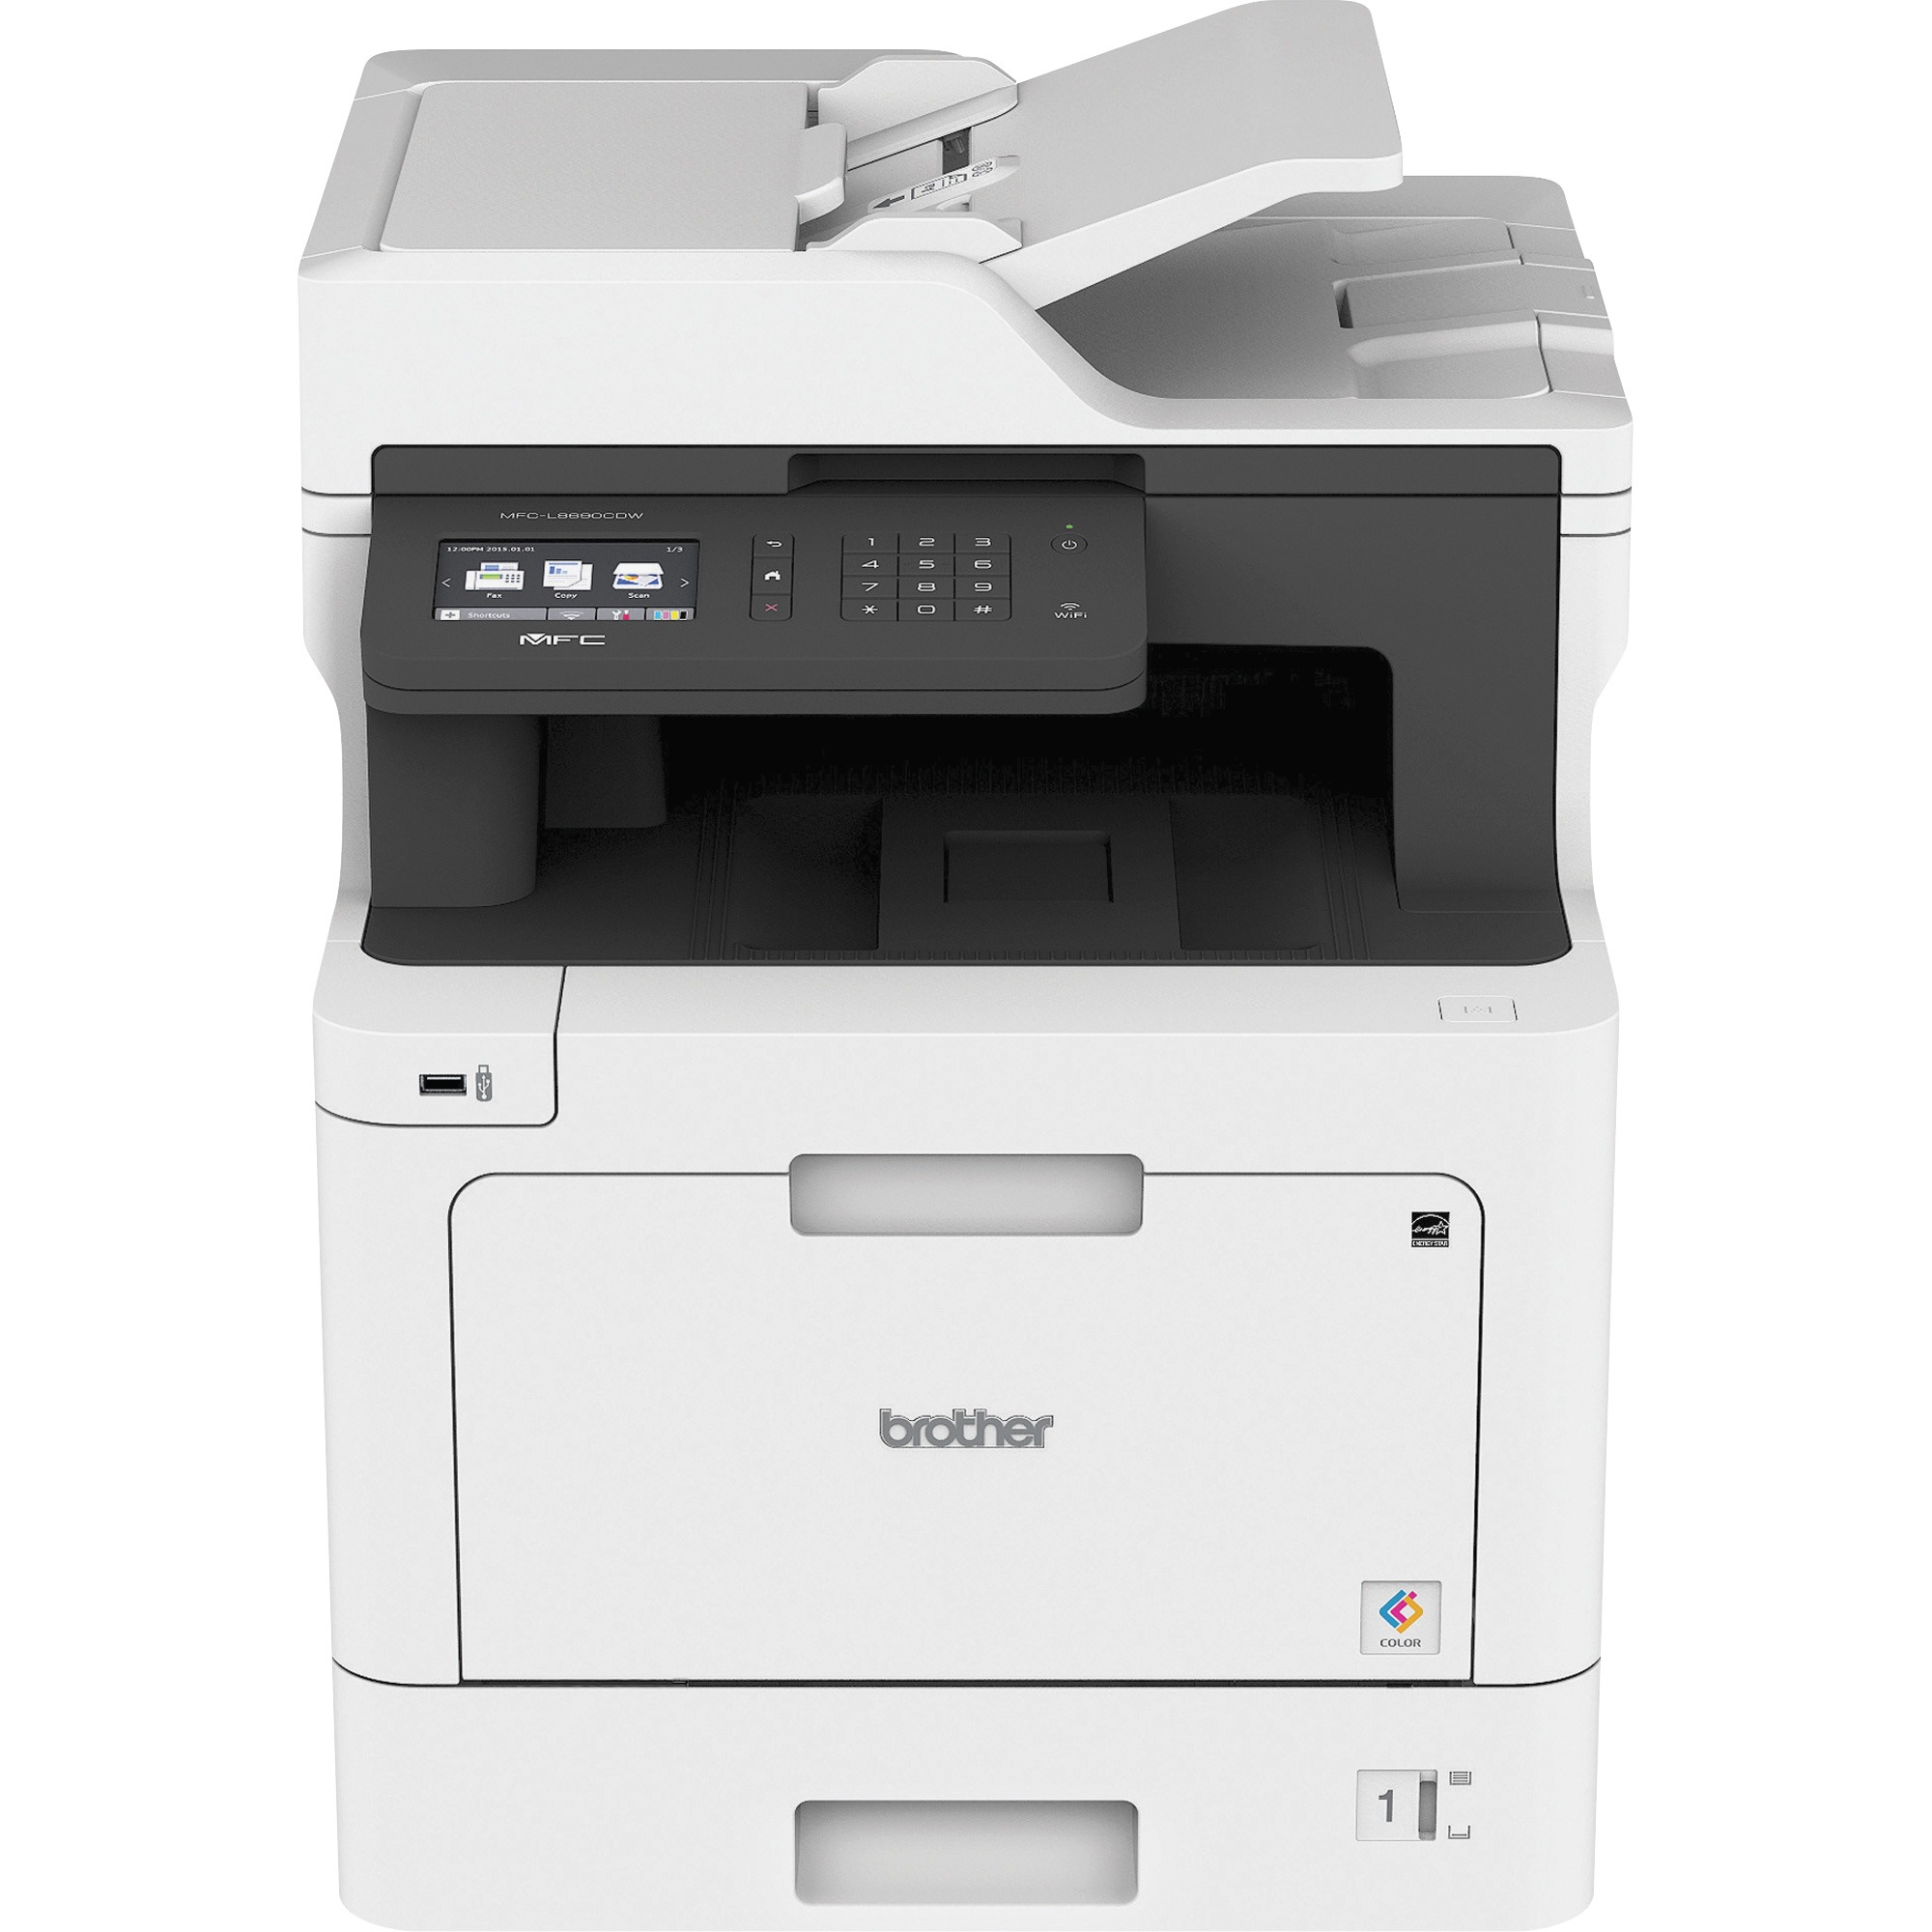 Brother MFC-L8610CDW Laser Multifunction Printer by Brother